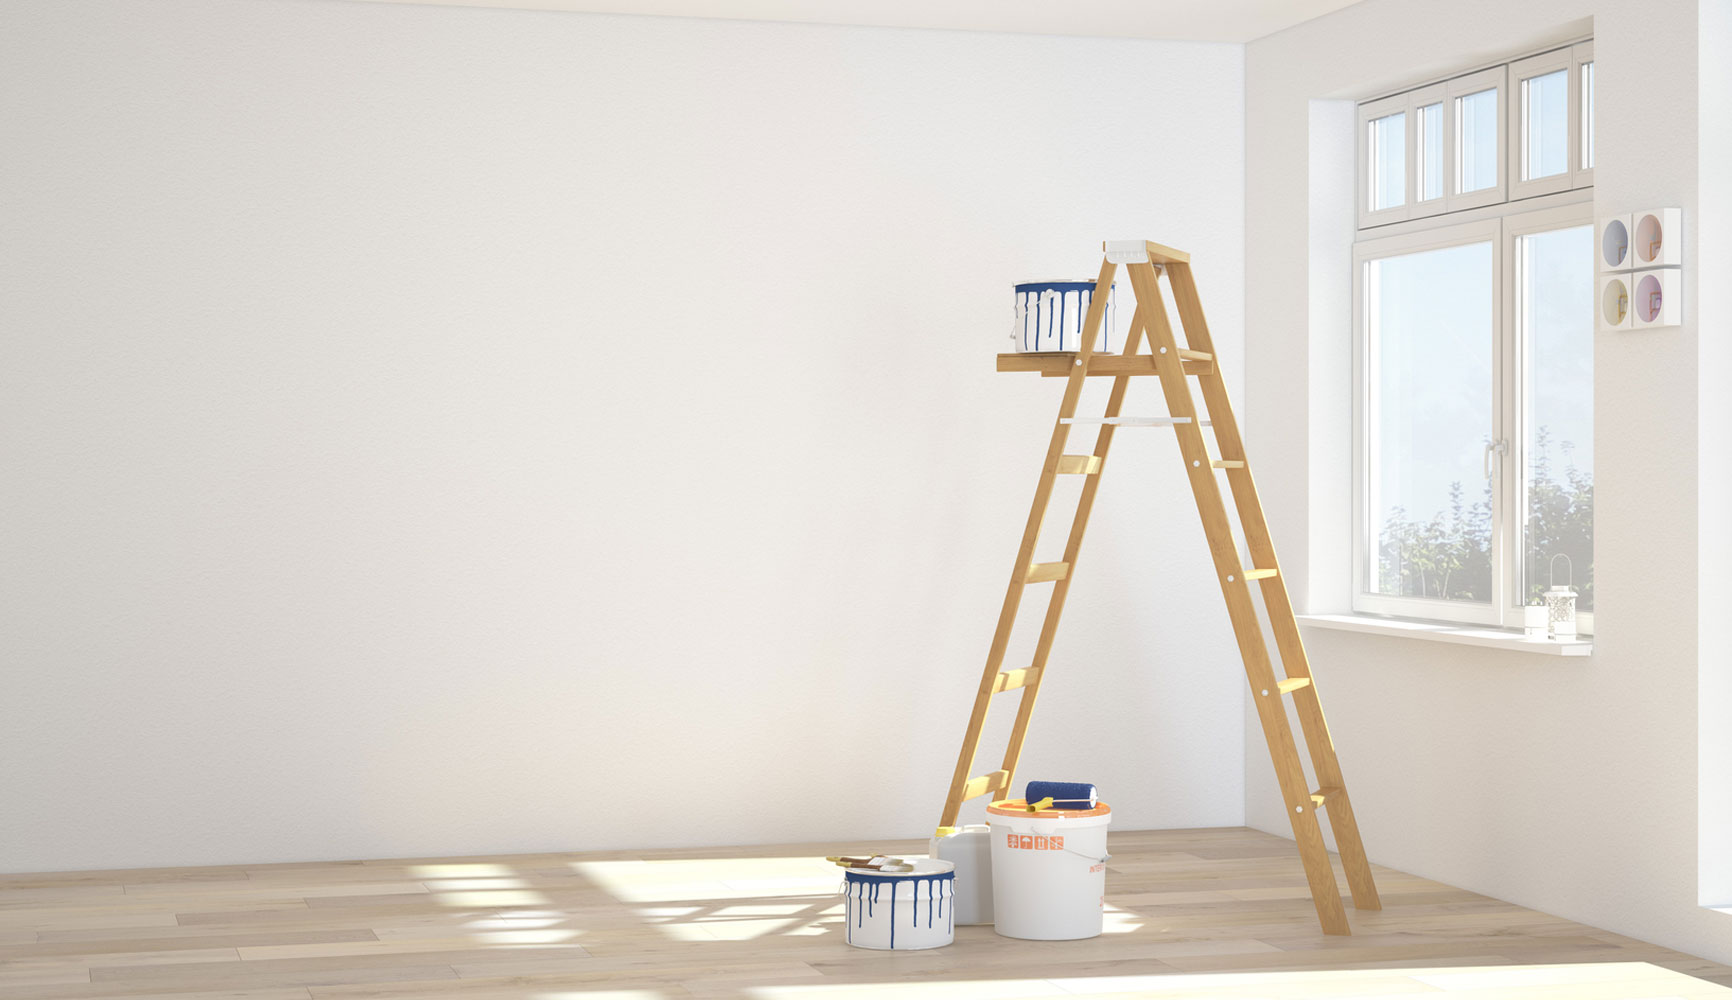 Decorators Wedding Decorators In Noida Did You Know That Home Depot Owns Home Decorators